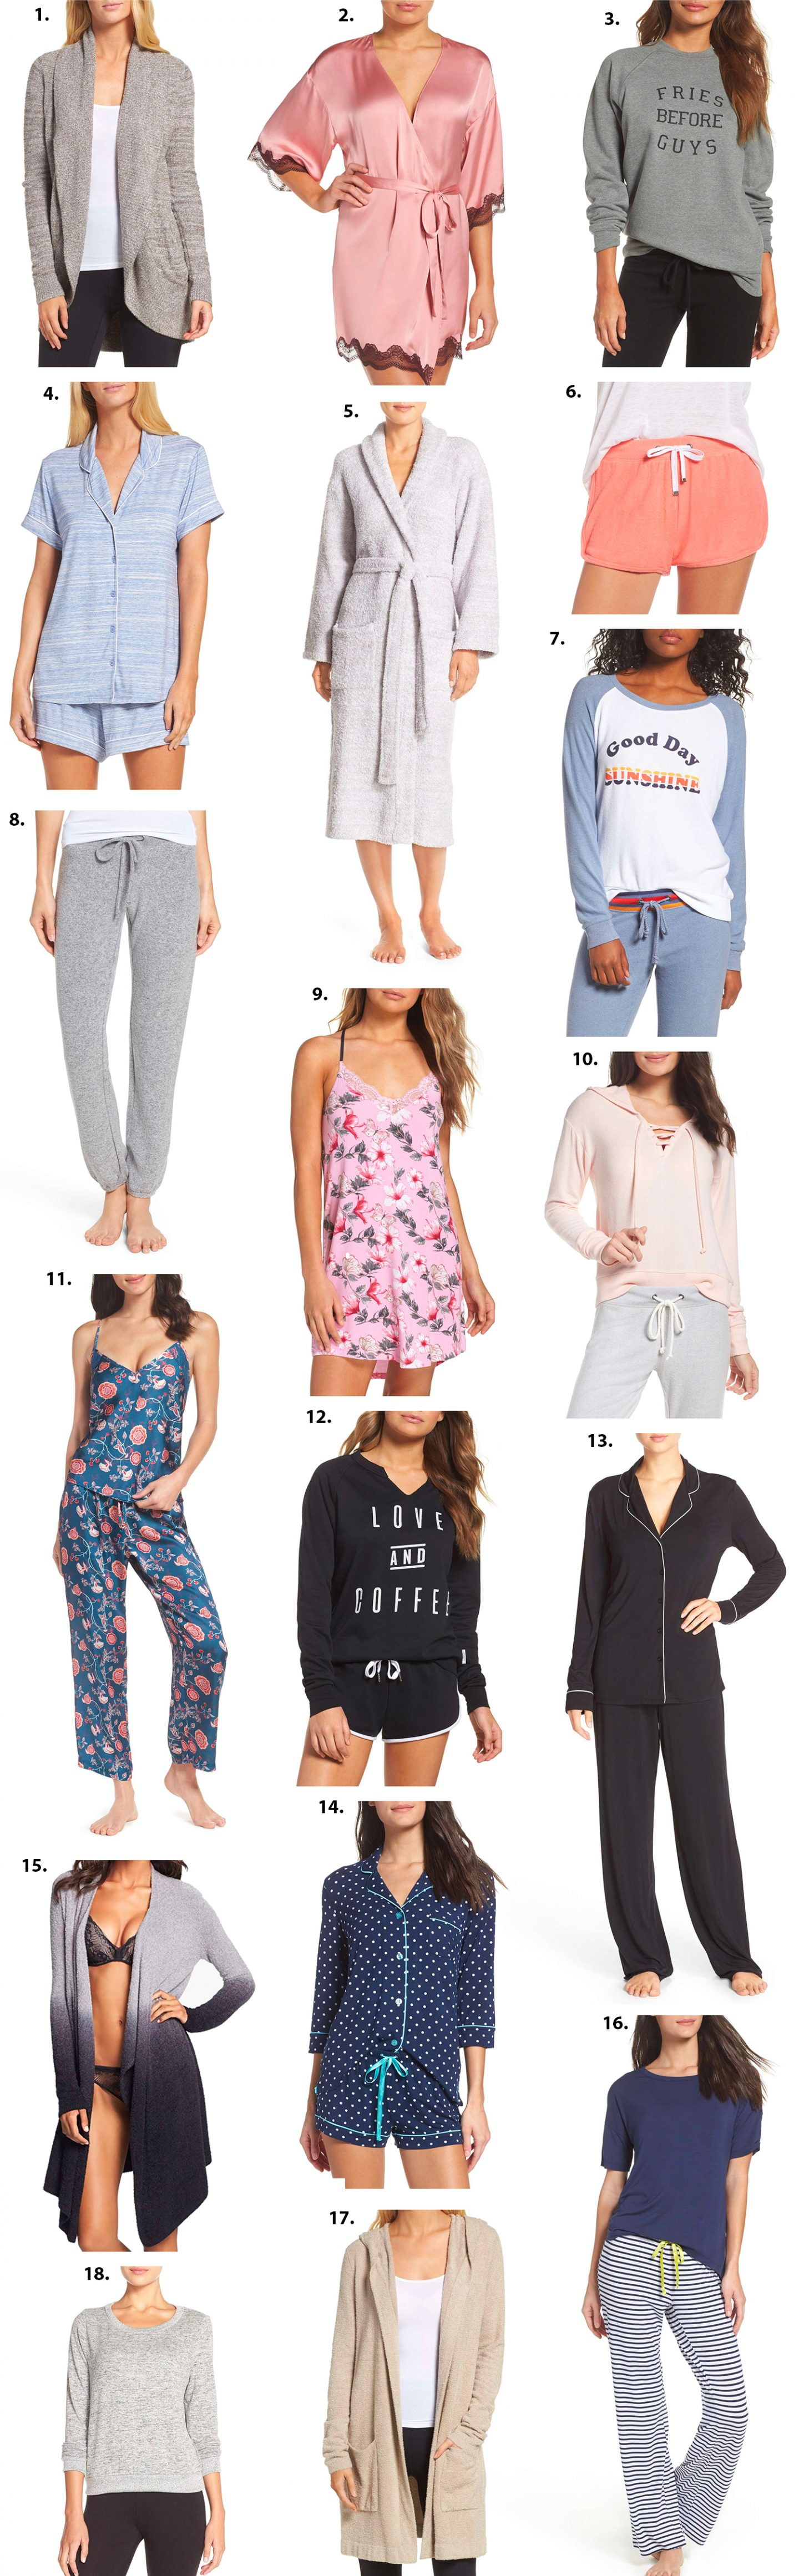 The best loungewear deals from the Nordstrom Anniversary Sale